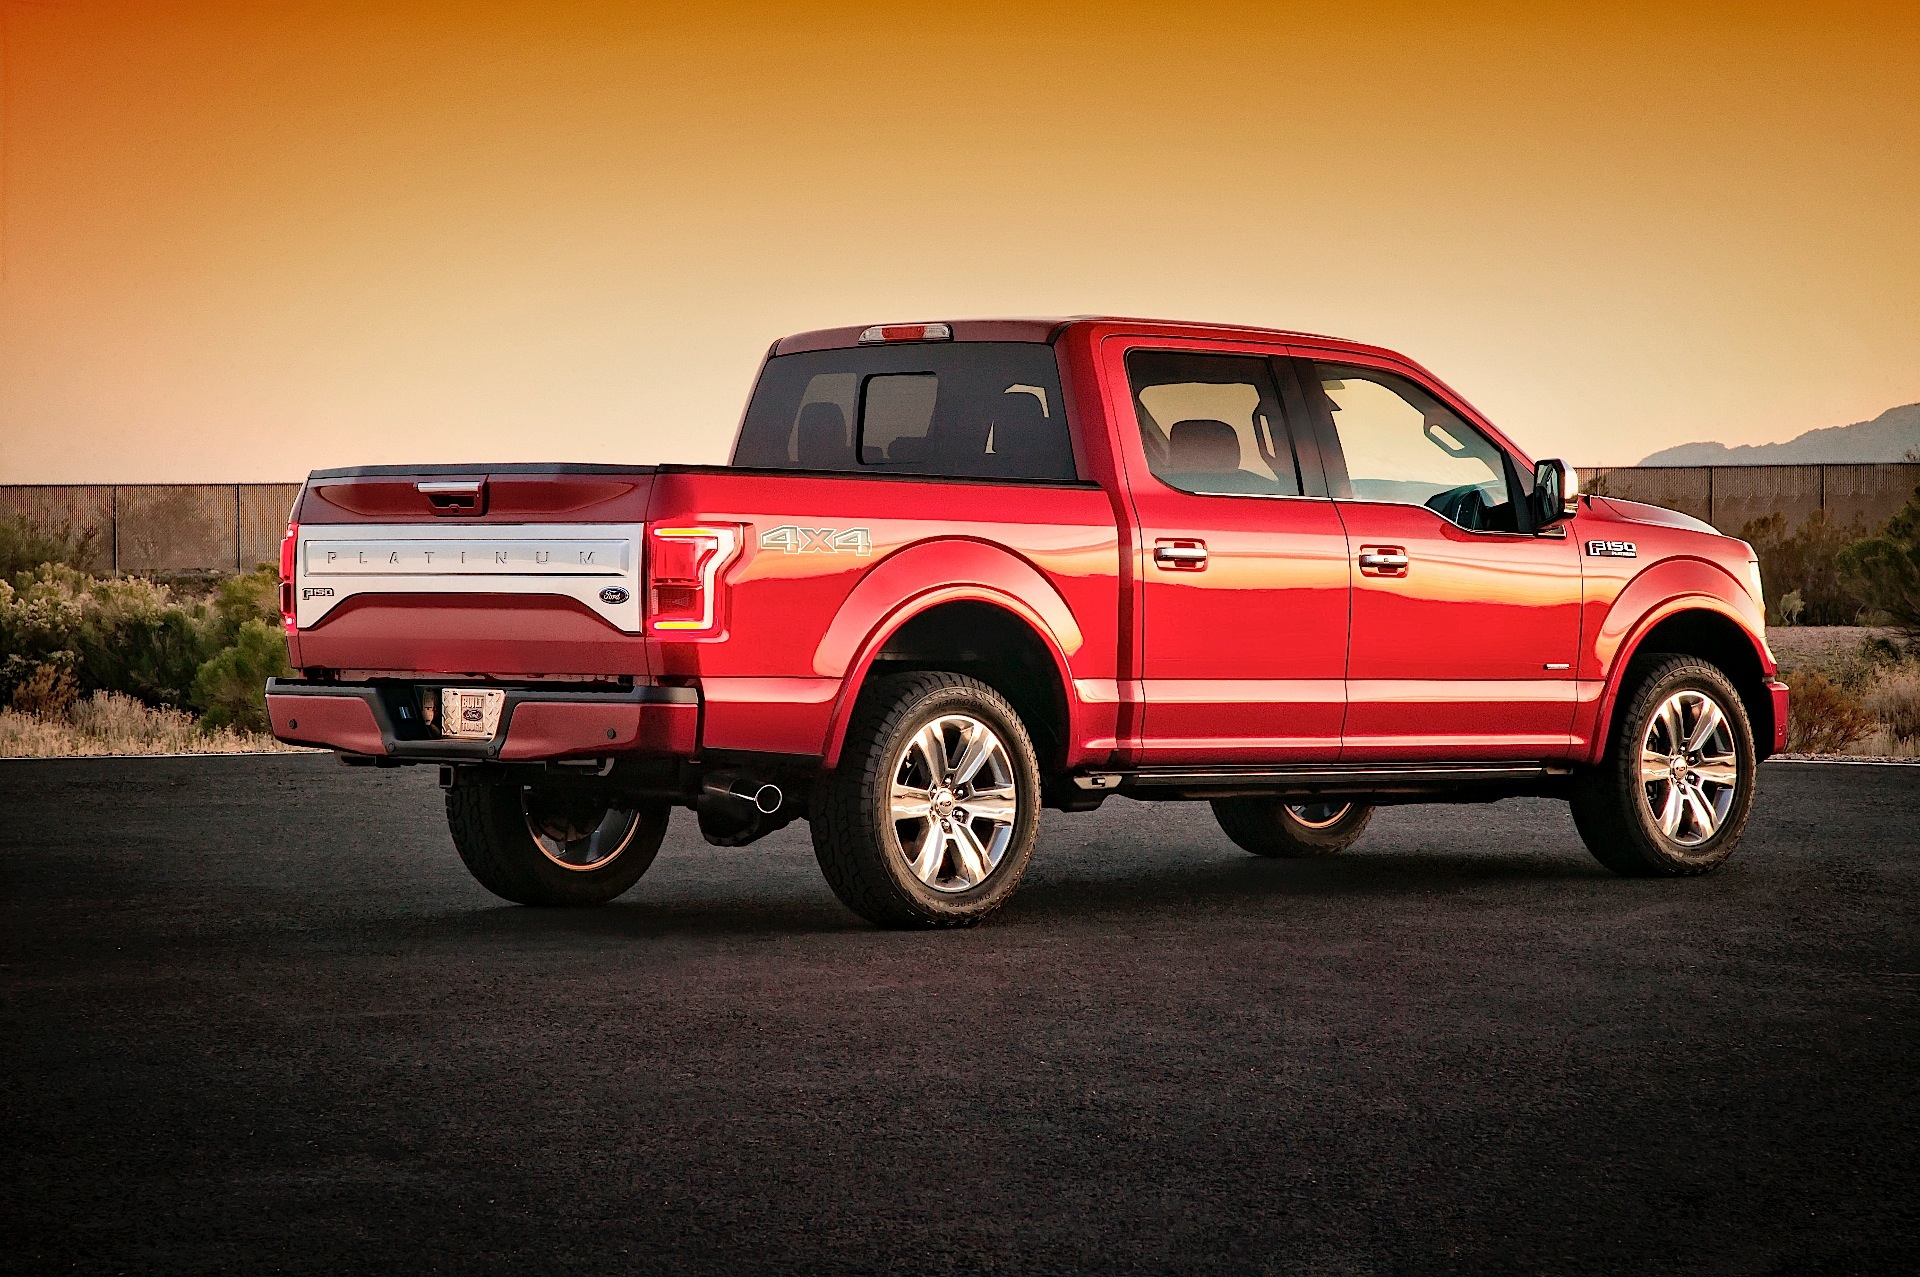 ford f 150 super crew specs 2014 2015 2016 2017 2018 autoevolution. Black Bedroom Furniture Sets. Home Design Ideas